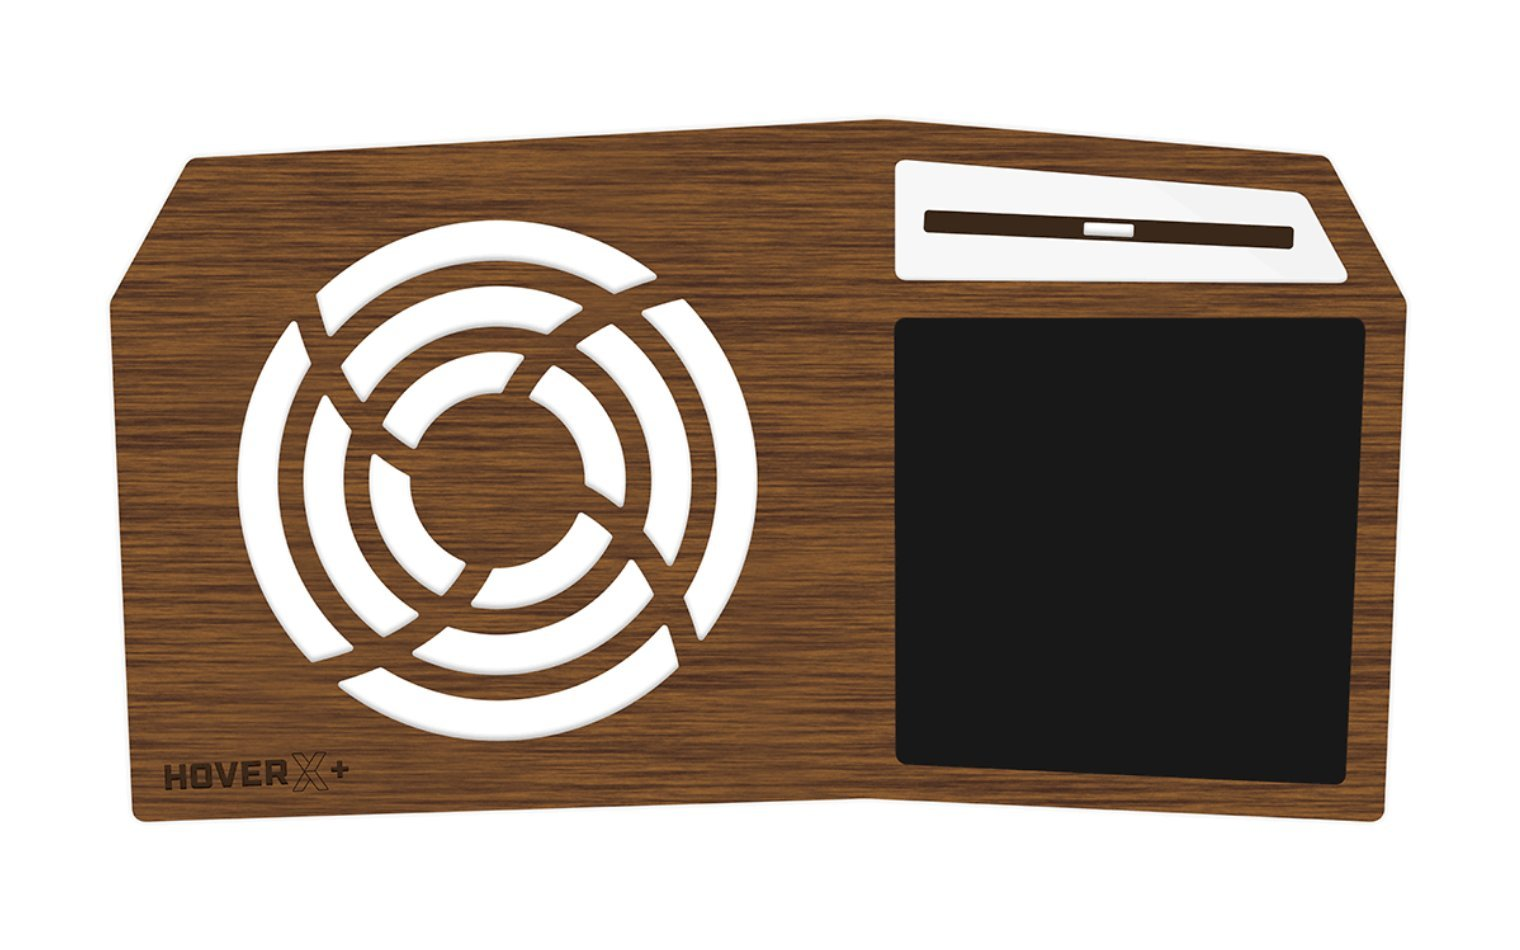 iSkelter Hover X+ - Ultimate Gamers LapDesk - Giant Gamers Mousepad - Heat Ventilation - Natural or Walnut Bamboo - Made in The USA (Extended - 17'' Laptops, Limited Walnut Bamboo)